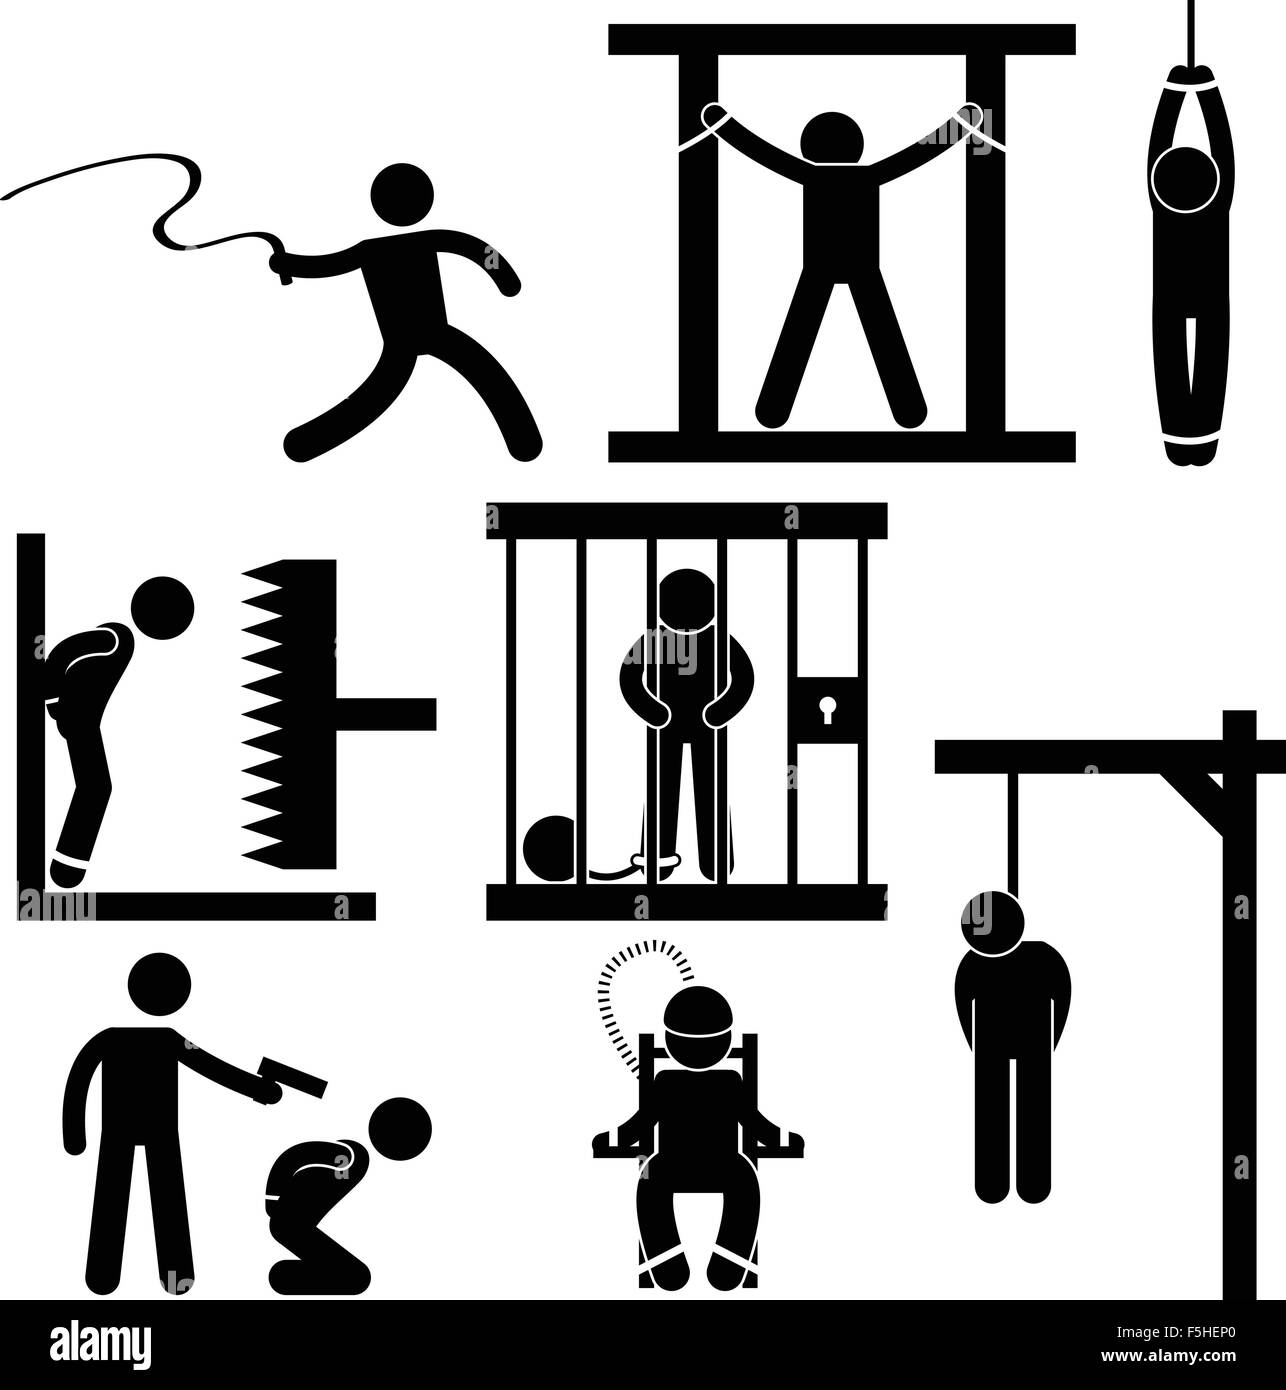 Punishment Torture Justice Death Sentence Execution Icon Symbol Sign Pictogram - Stock Vector